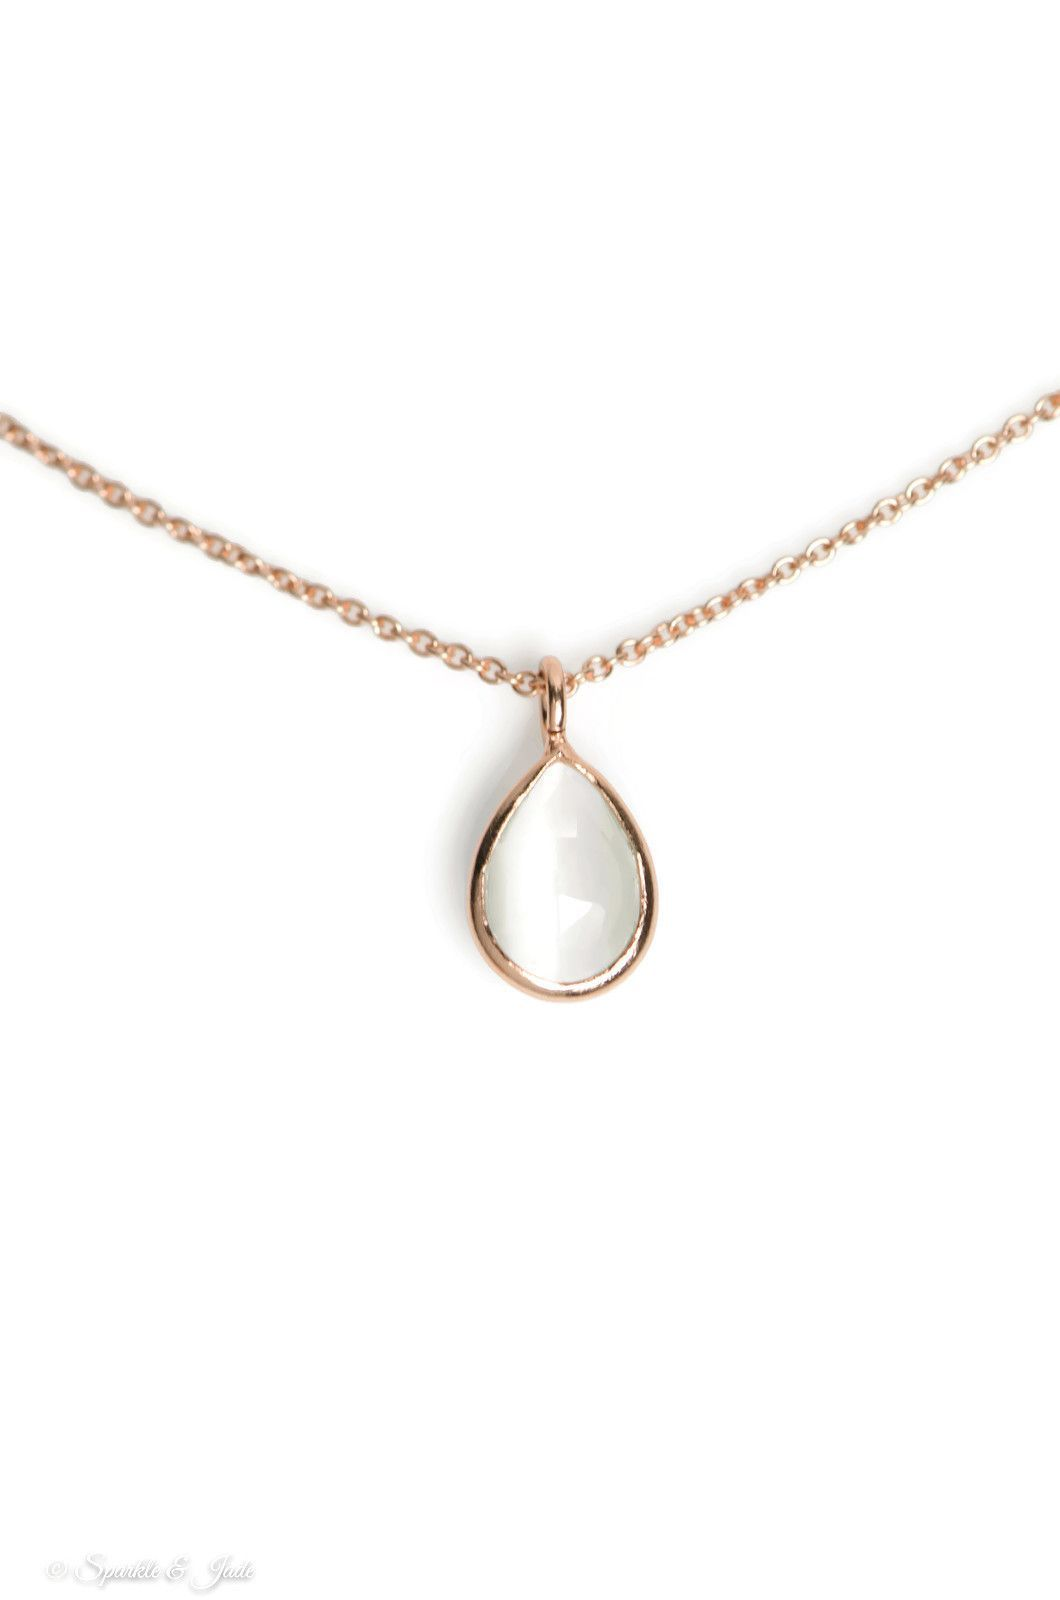 jewelry pendants ed pendant tiffany wid co in fit elsa hei teardrop peretti necklaces id necklace constrain gold fmt